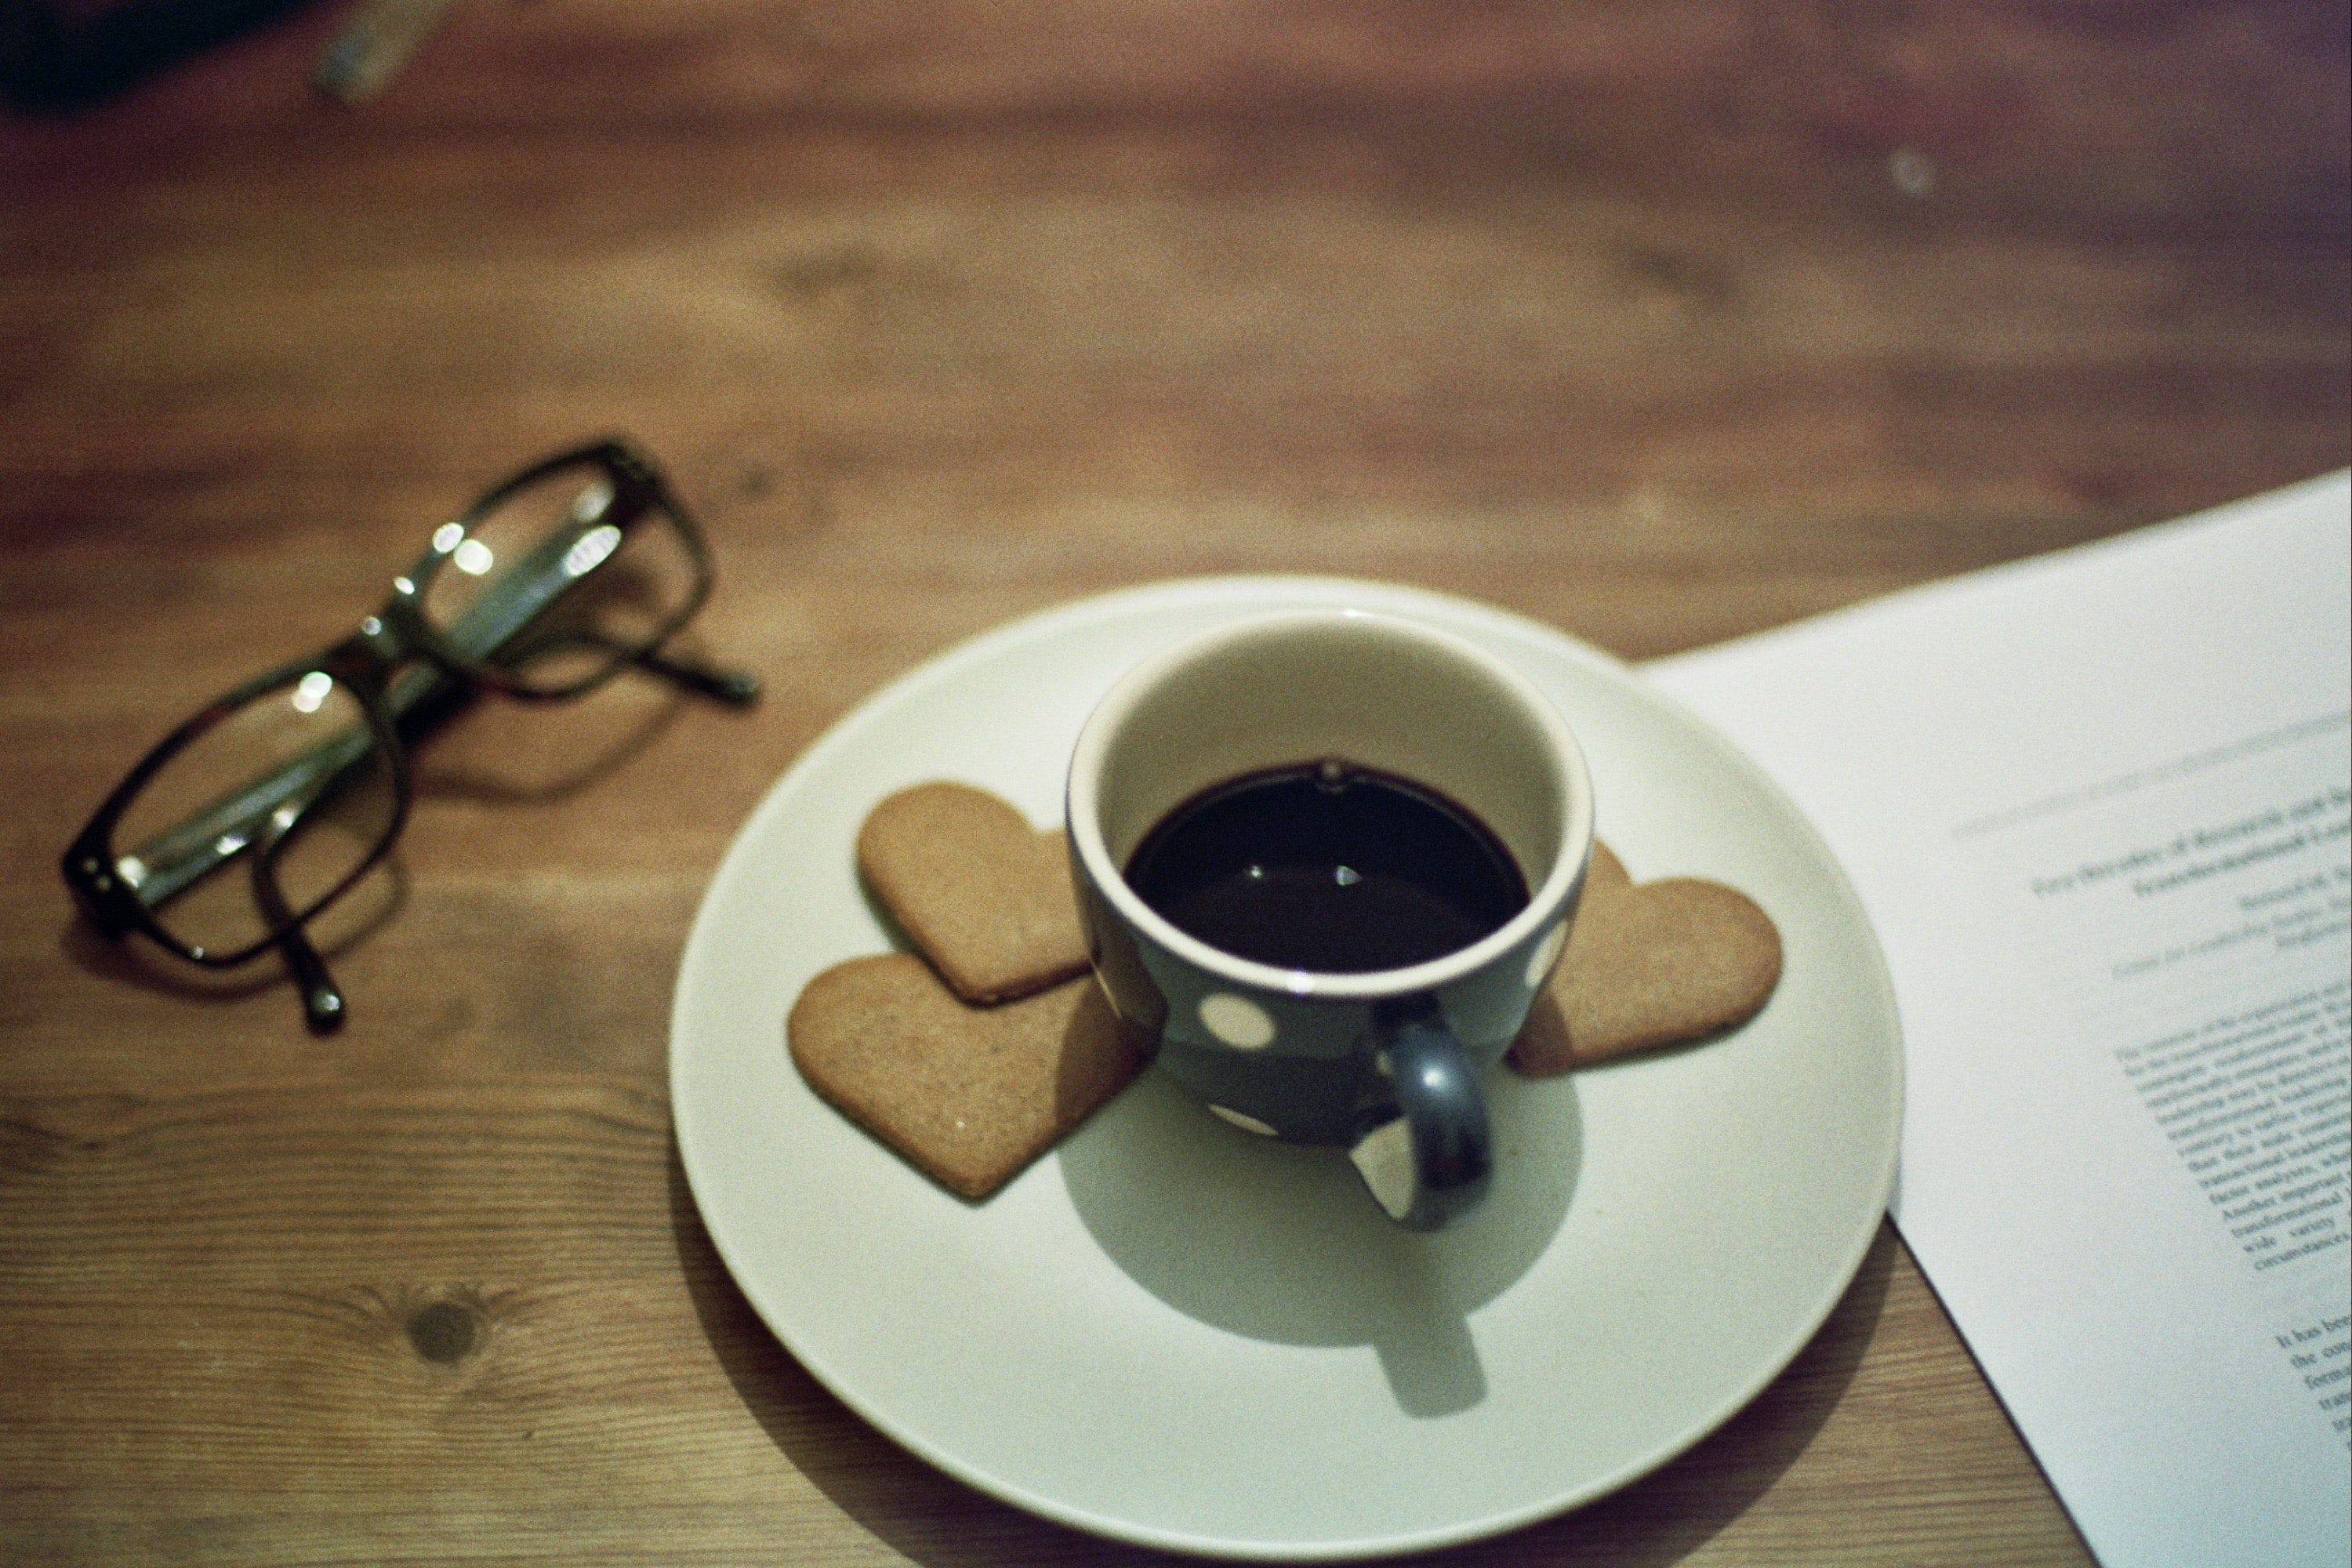 Tiny polka-dot mug filled with coffee on a saucer with heart biscuits and a pair of glasses on the table